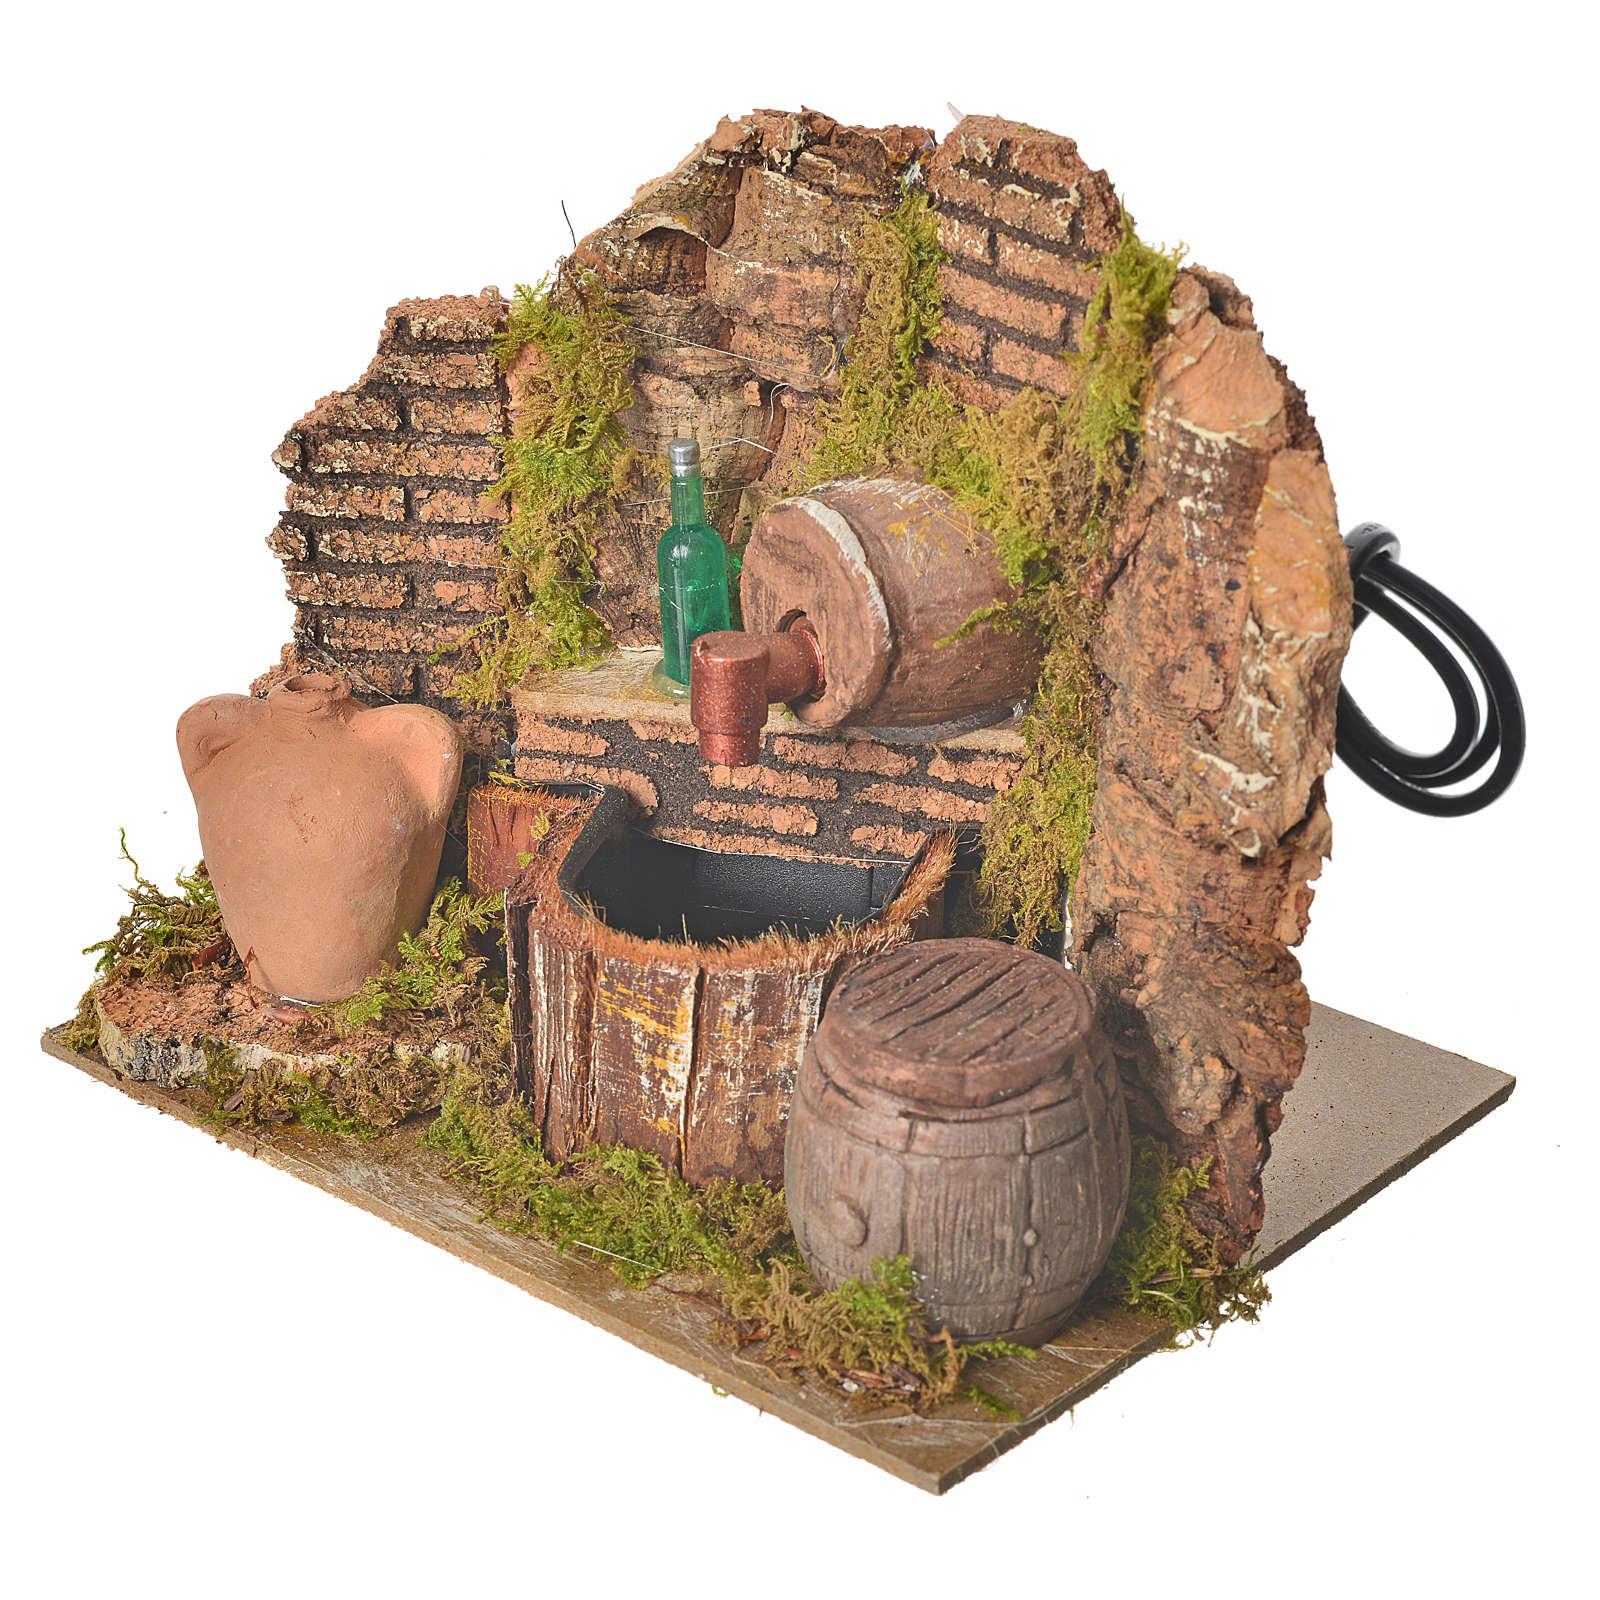 Nativity setting, tavern with pump and bottle 15x12x12cm 4